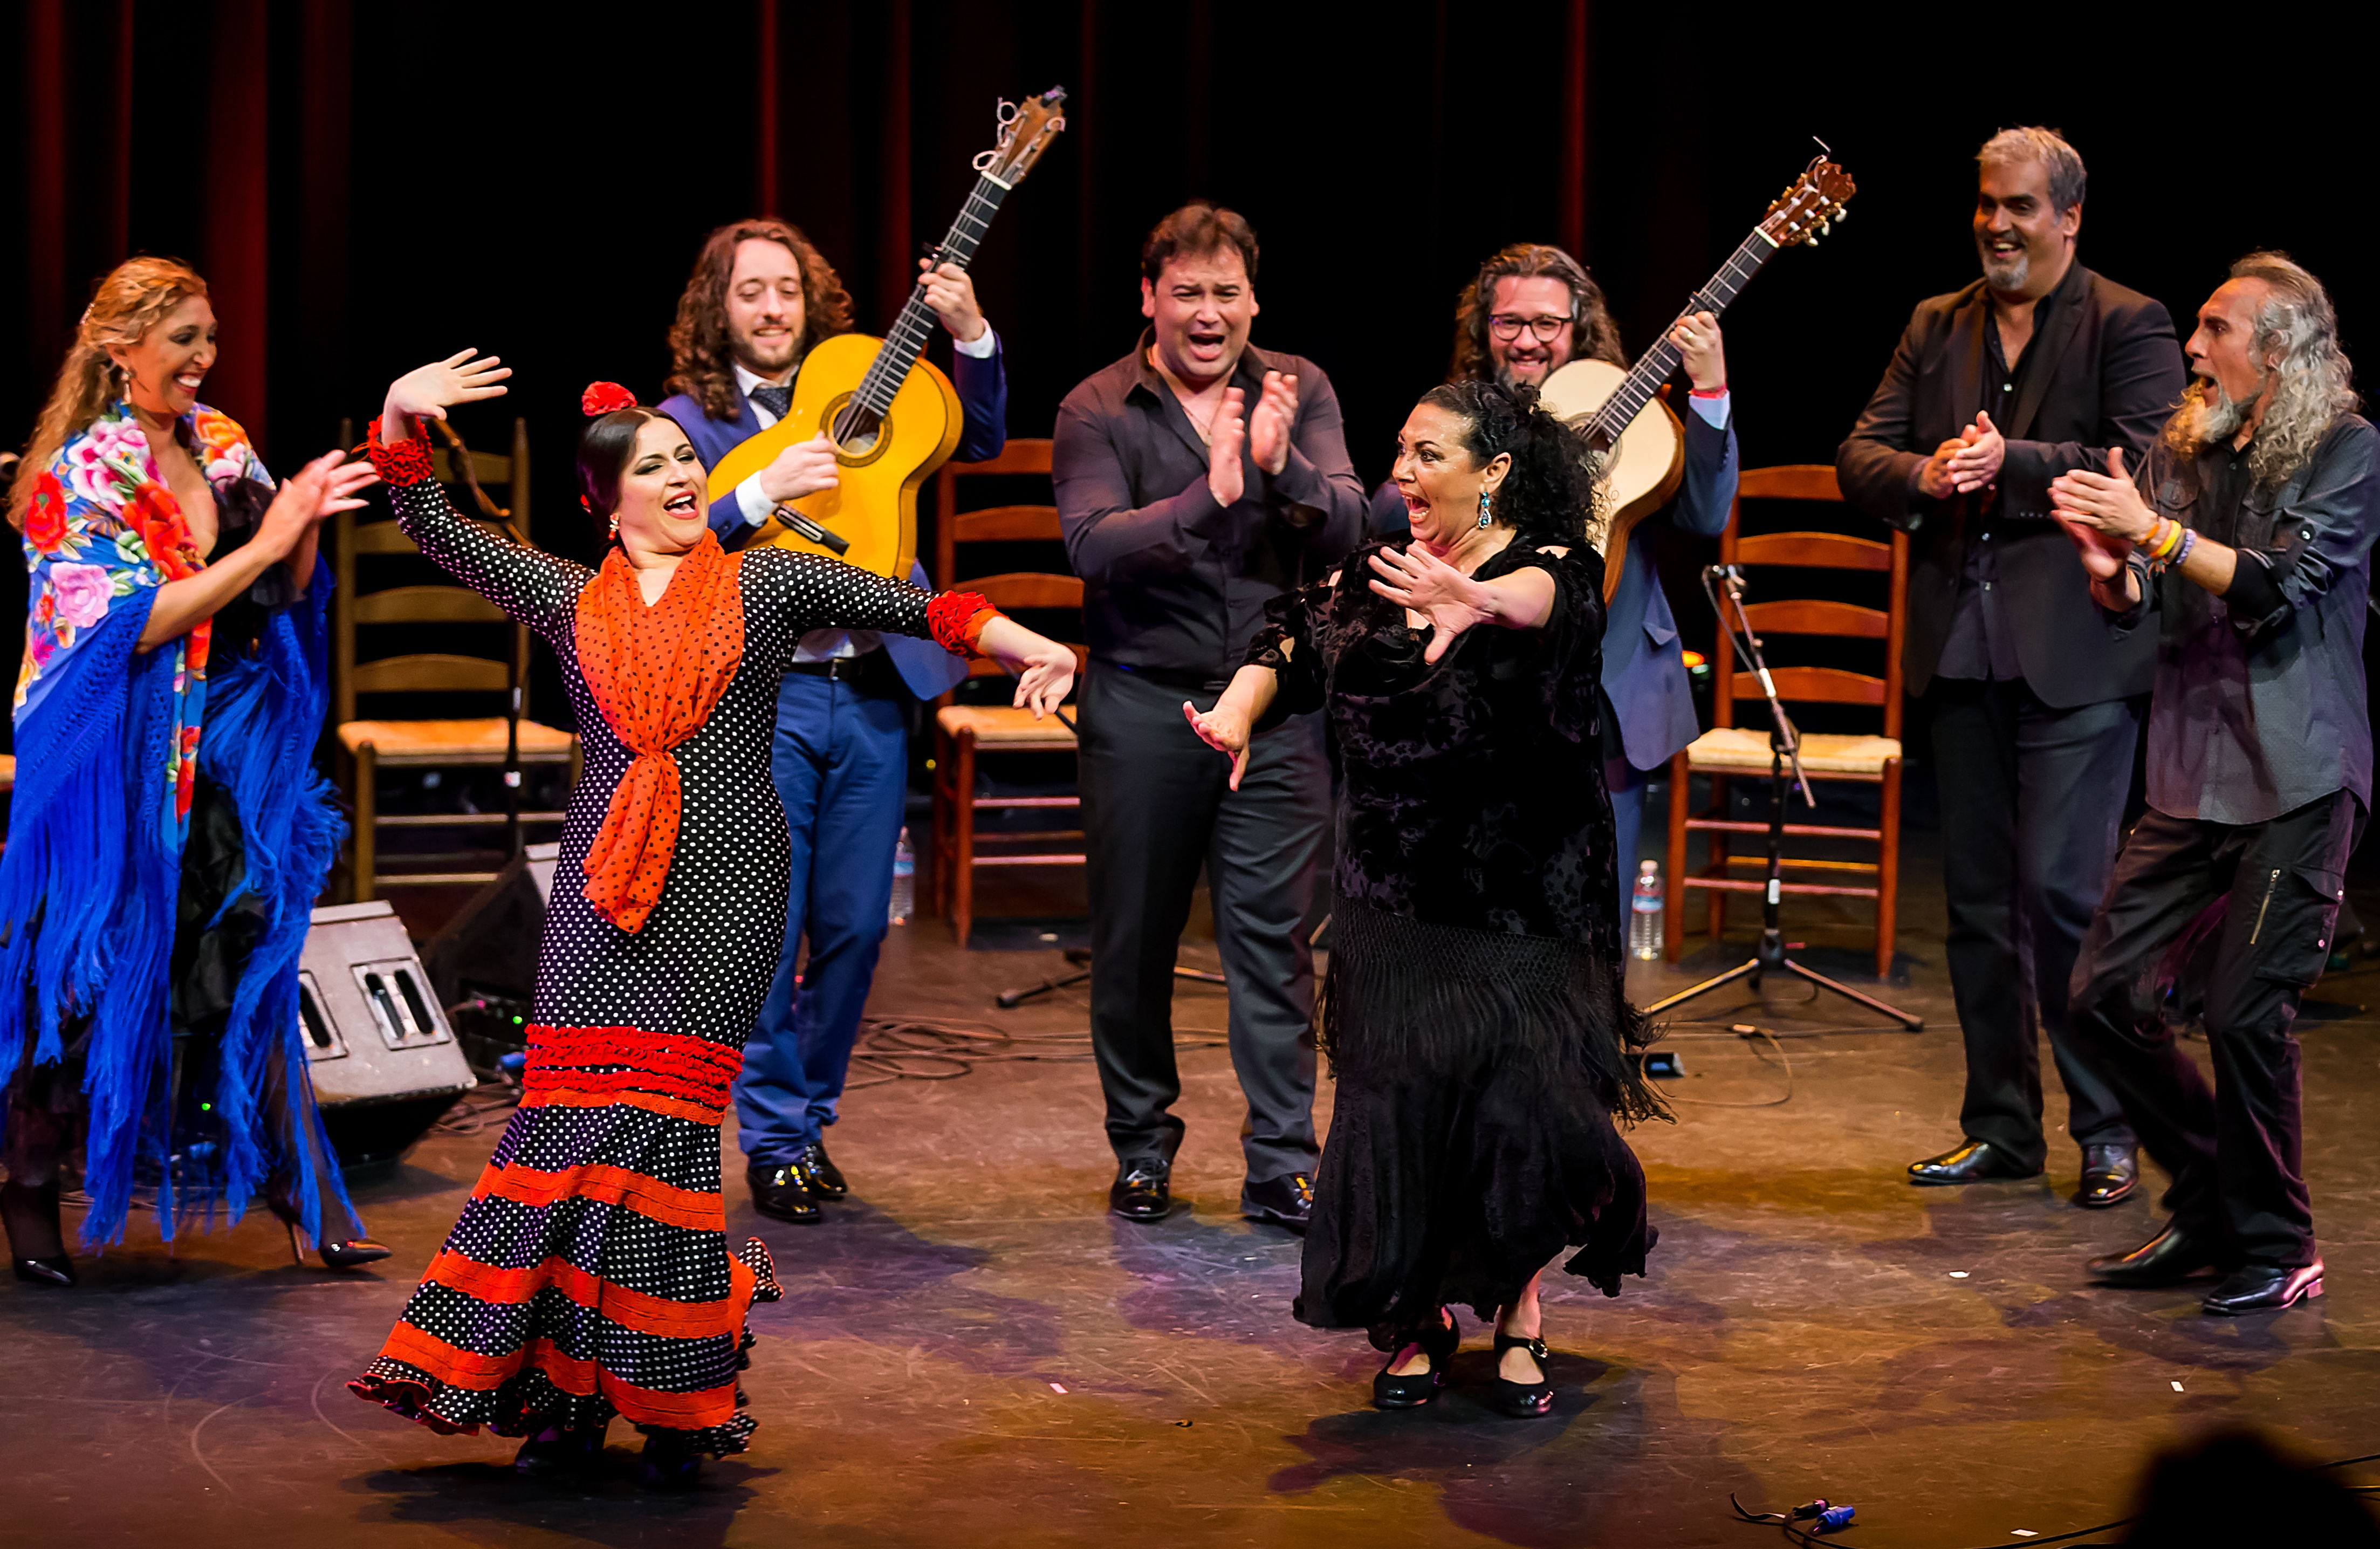 Gema Moneo (red scarf) on stage at the Bay Area Flamenco Festival 2015.